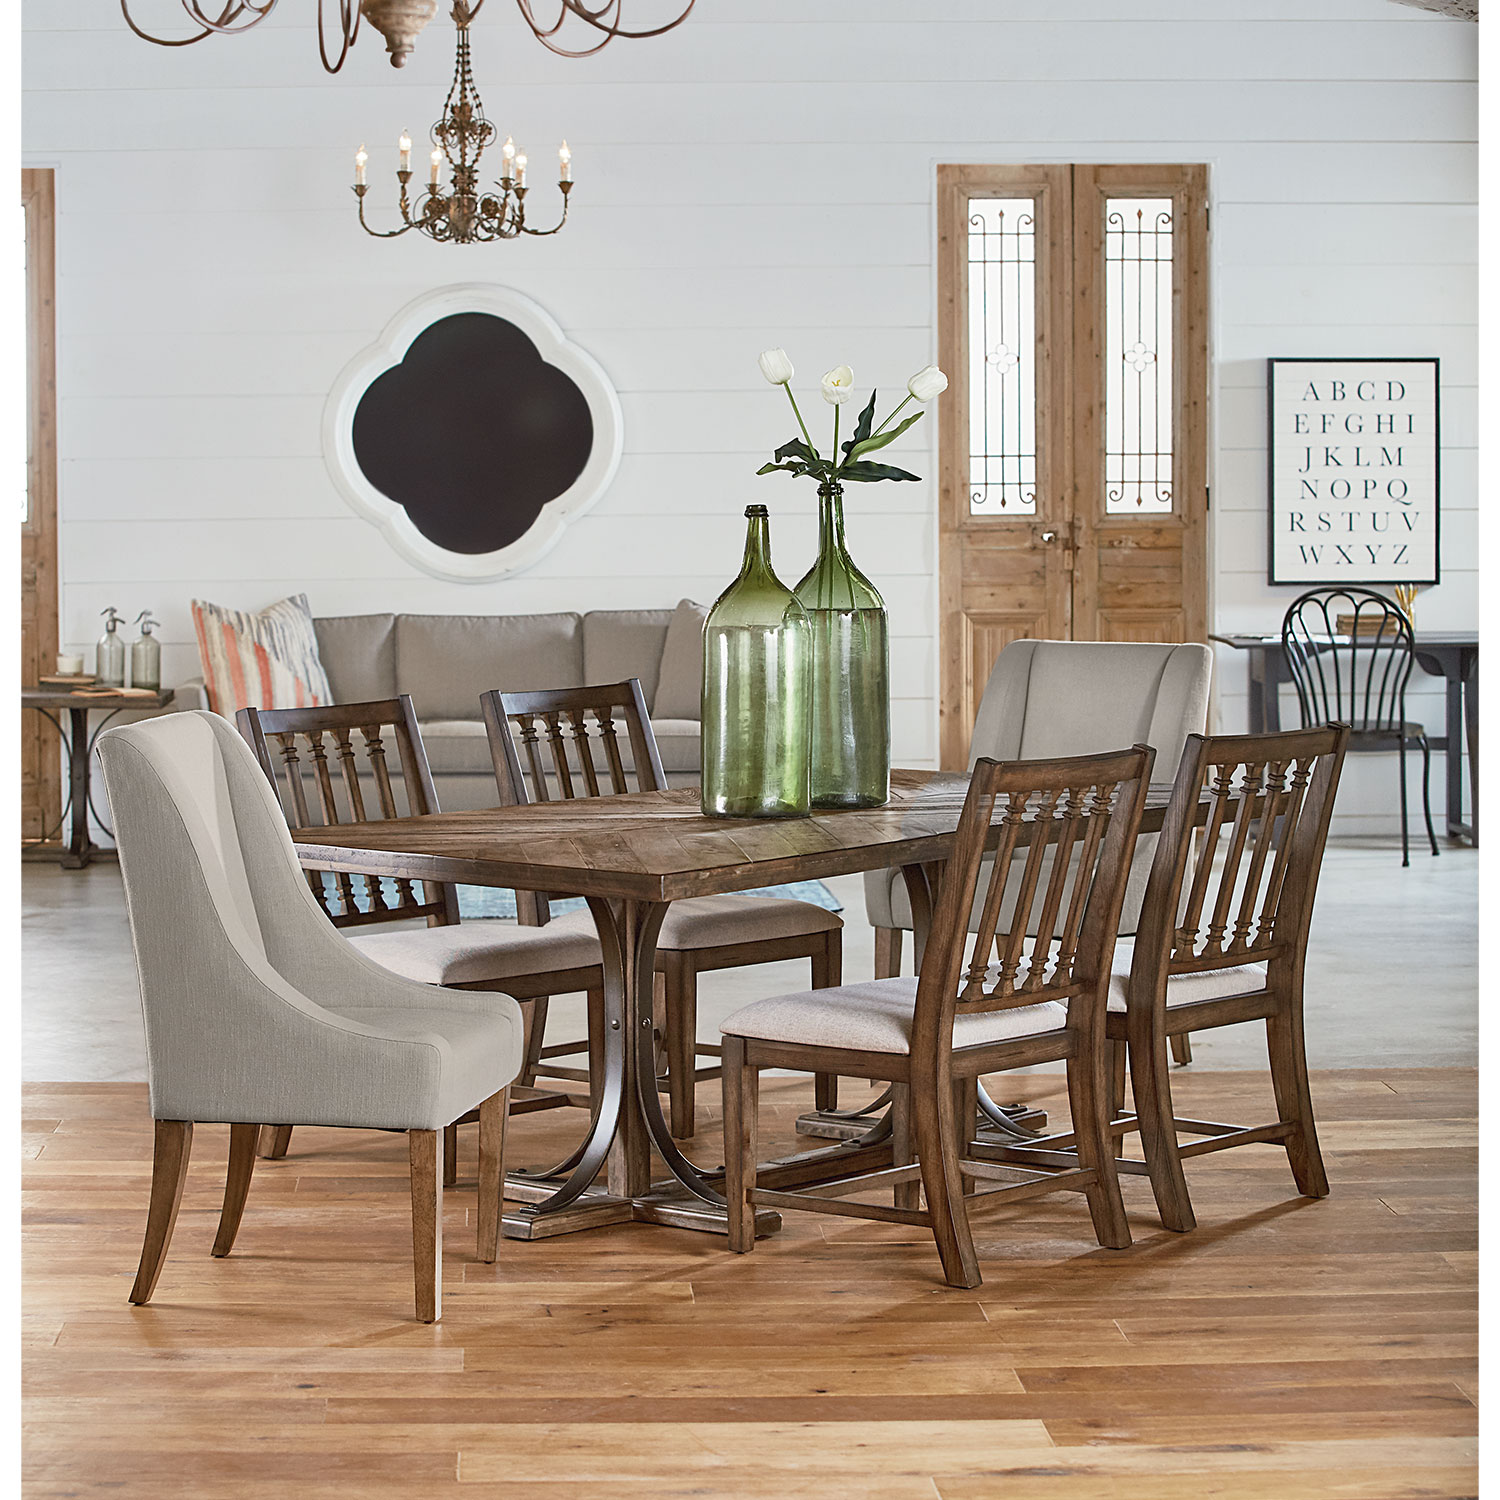 dining room furniture from magnolia home value city